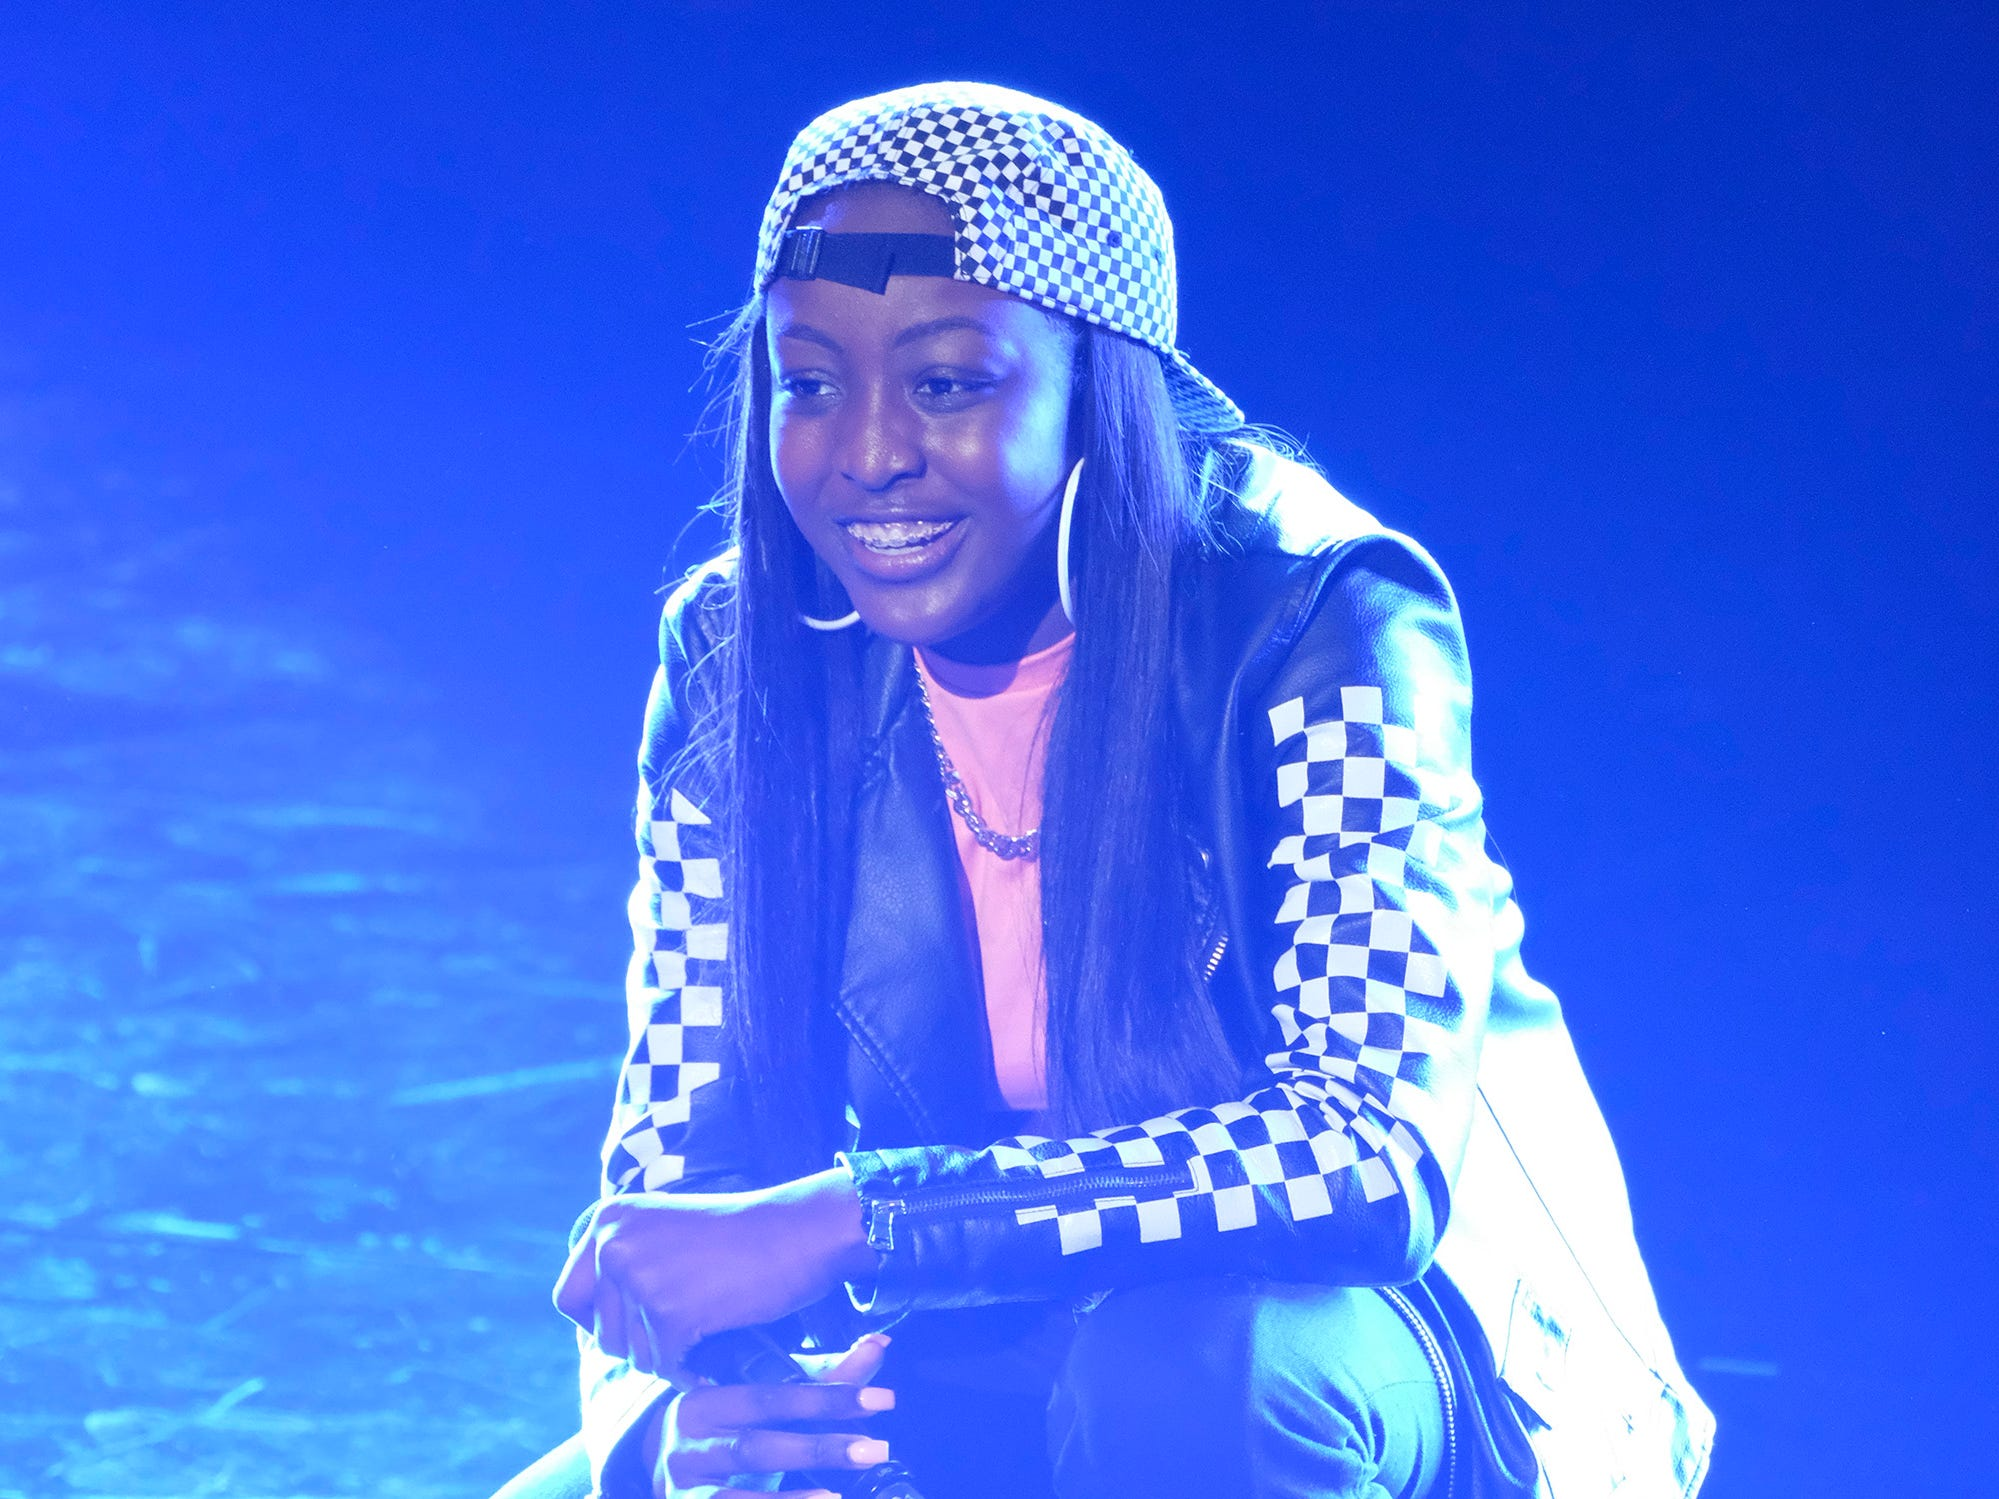 Rapper Flau'jae who earned guest judge Chris Hardwick's Golden Buzzer